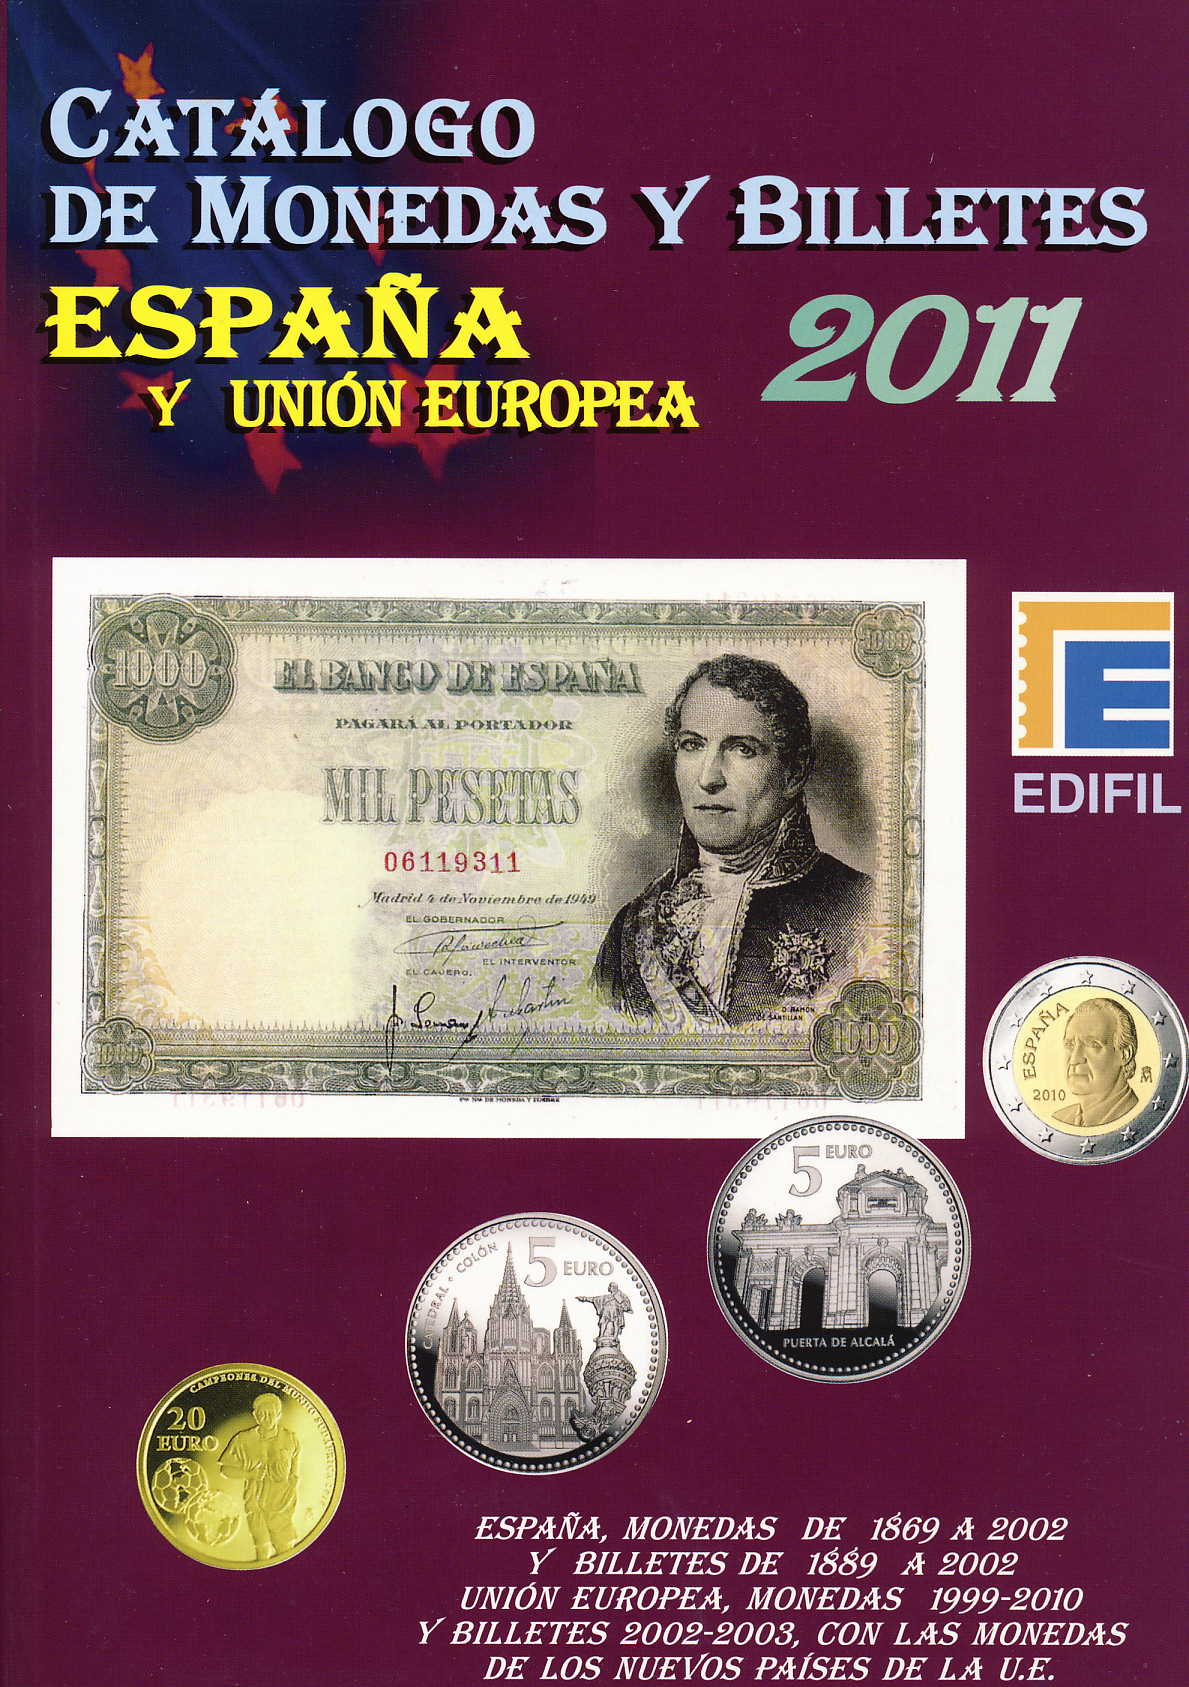 Edifil 2011 Catalogo de Monedas Y Billetes Espana y Union Europe